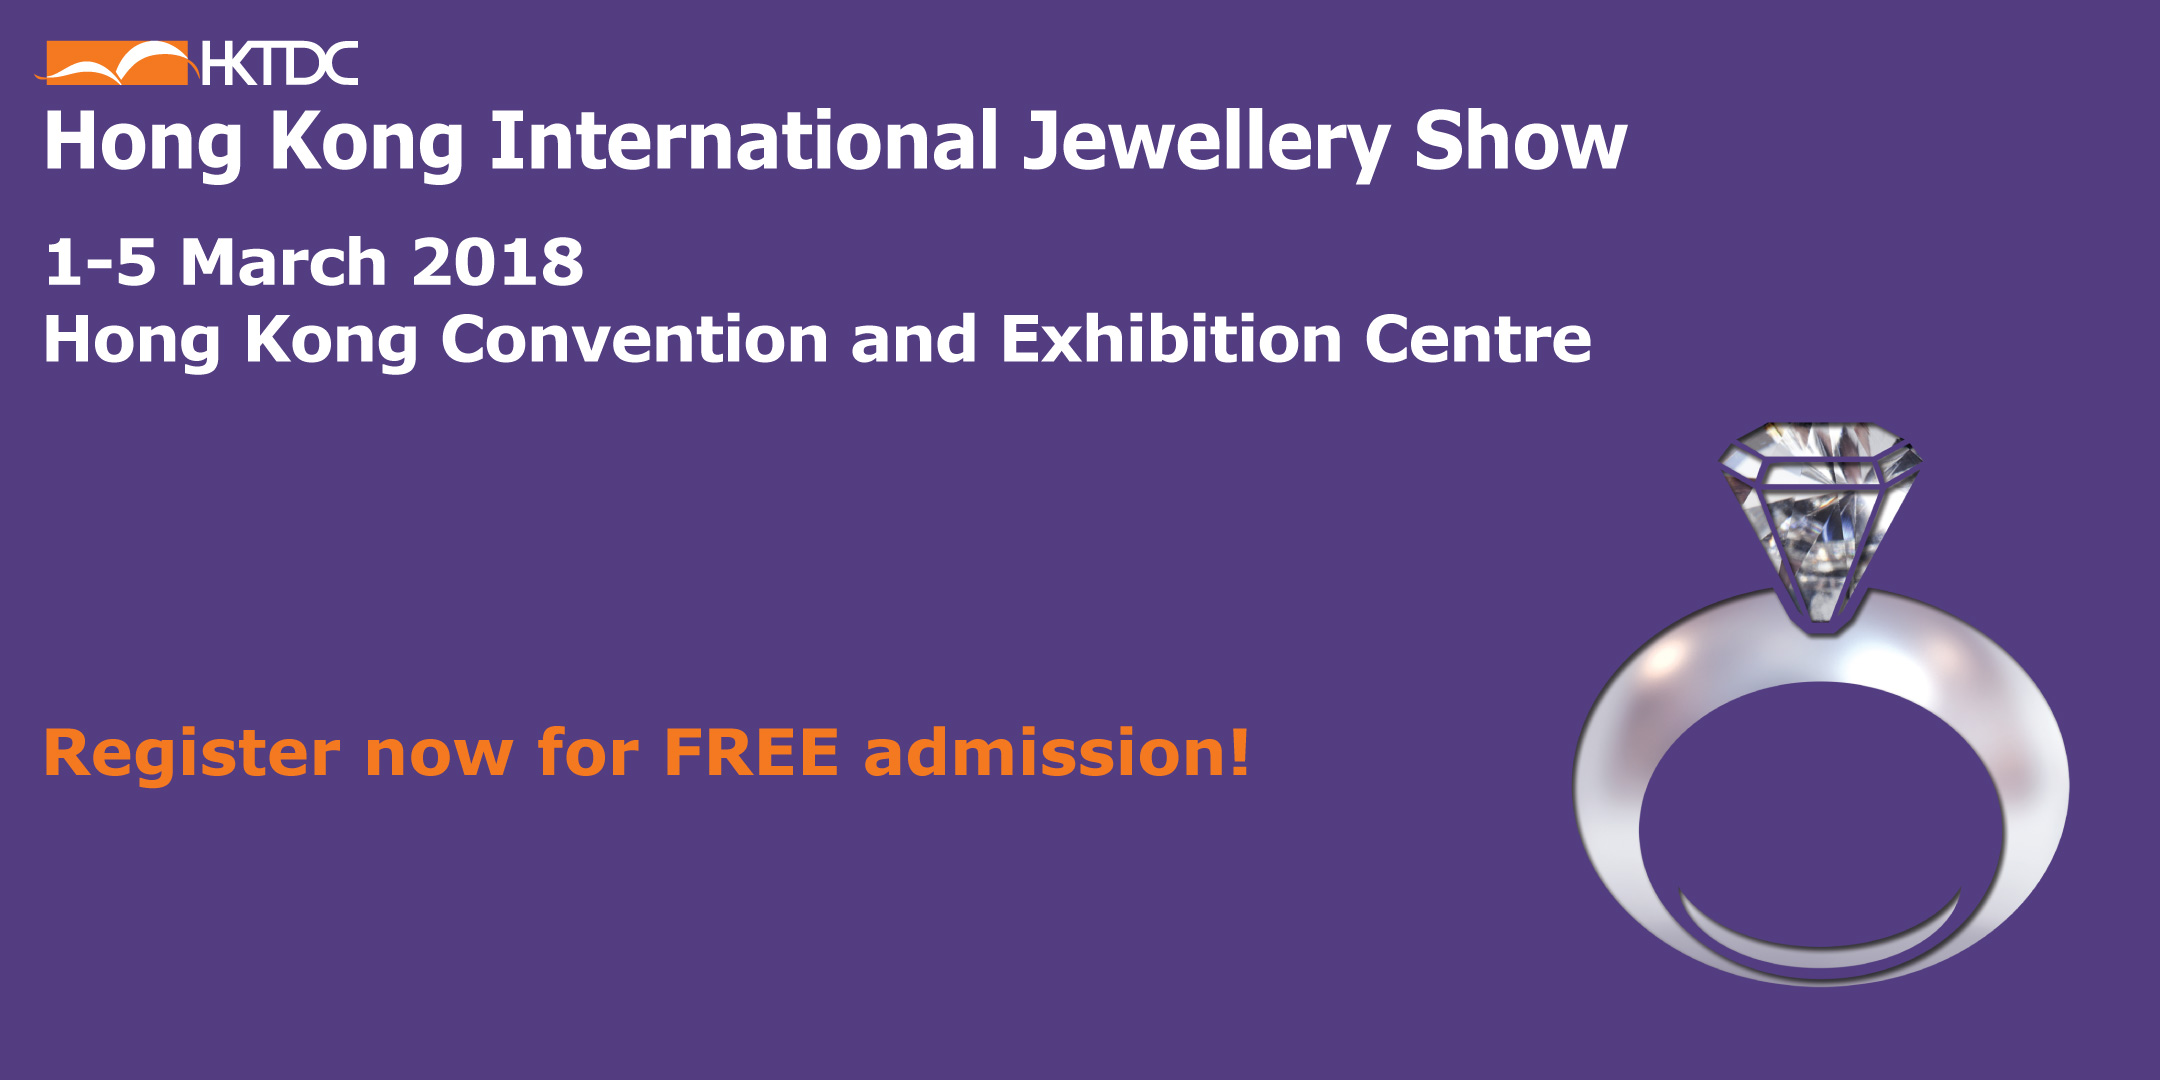 HKTDC Hong Kong International Jewellery Show, Hong Kong Convention and Exhibition Centre, Hong Kong, Hong Kong